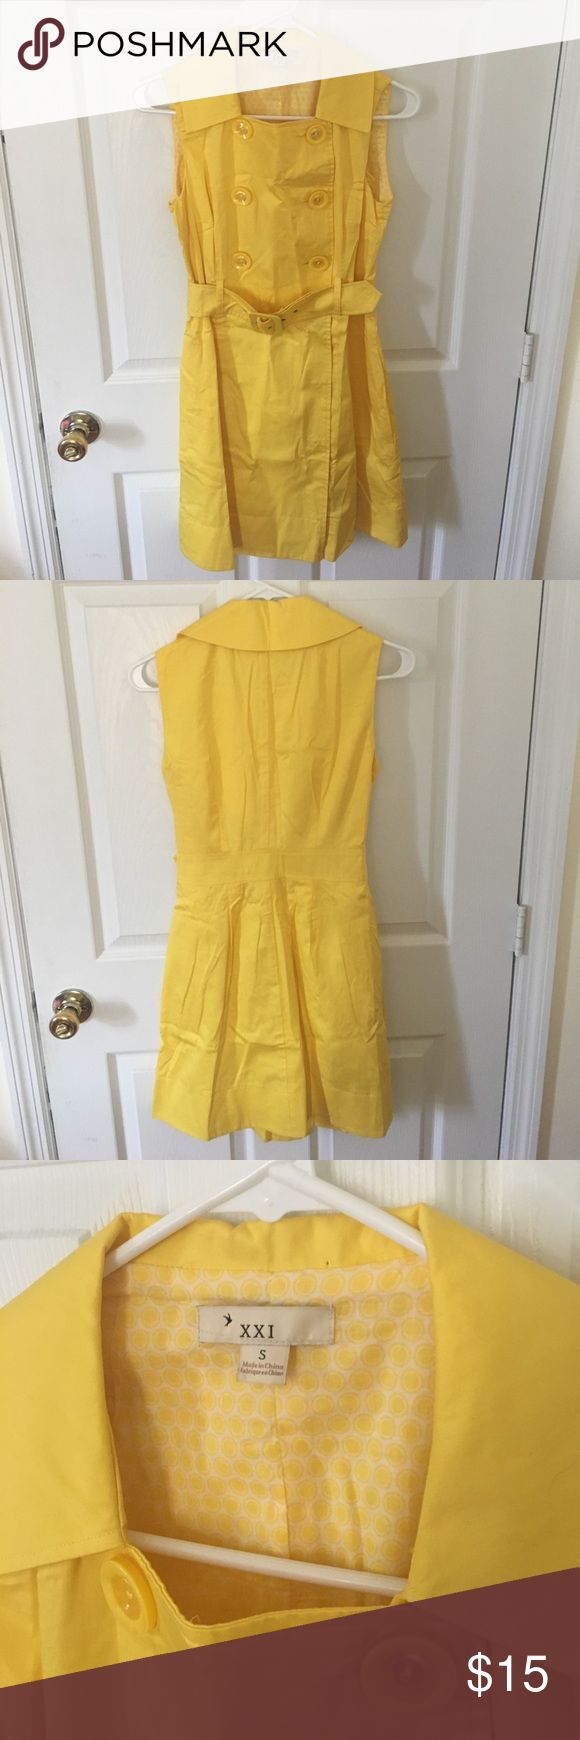 NWOT Yellow Trench Dress Size Small Super cute sleeveless trench dress from Forever 21. 100% cotton, fully lined, with pockets and removable fabric belt. Size Small. NWOT Forever 21 Dresses Mini